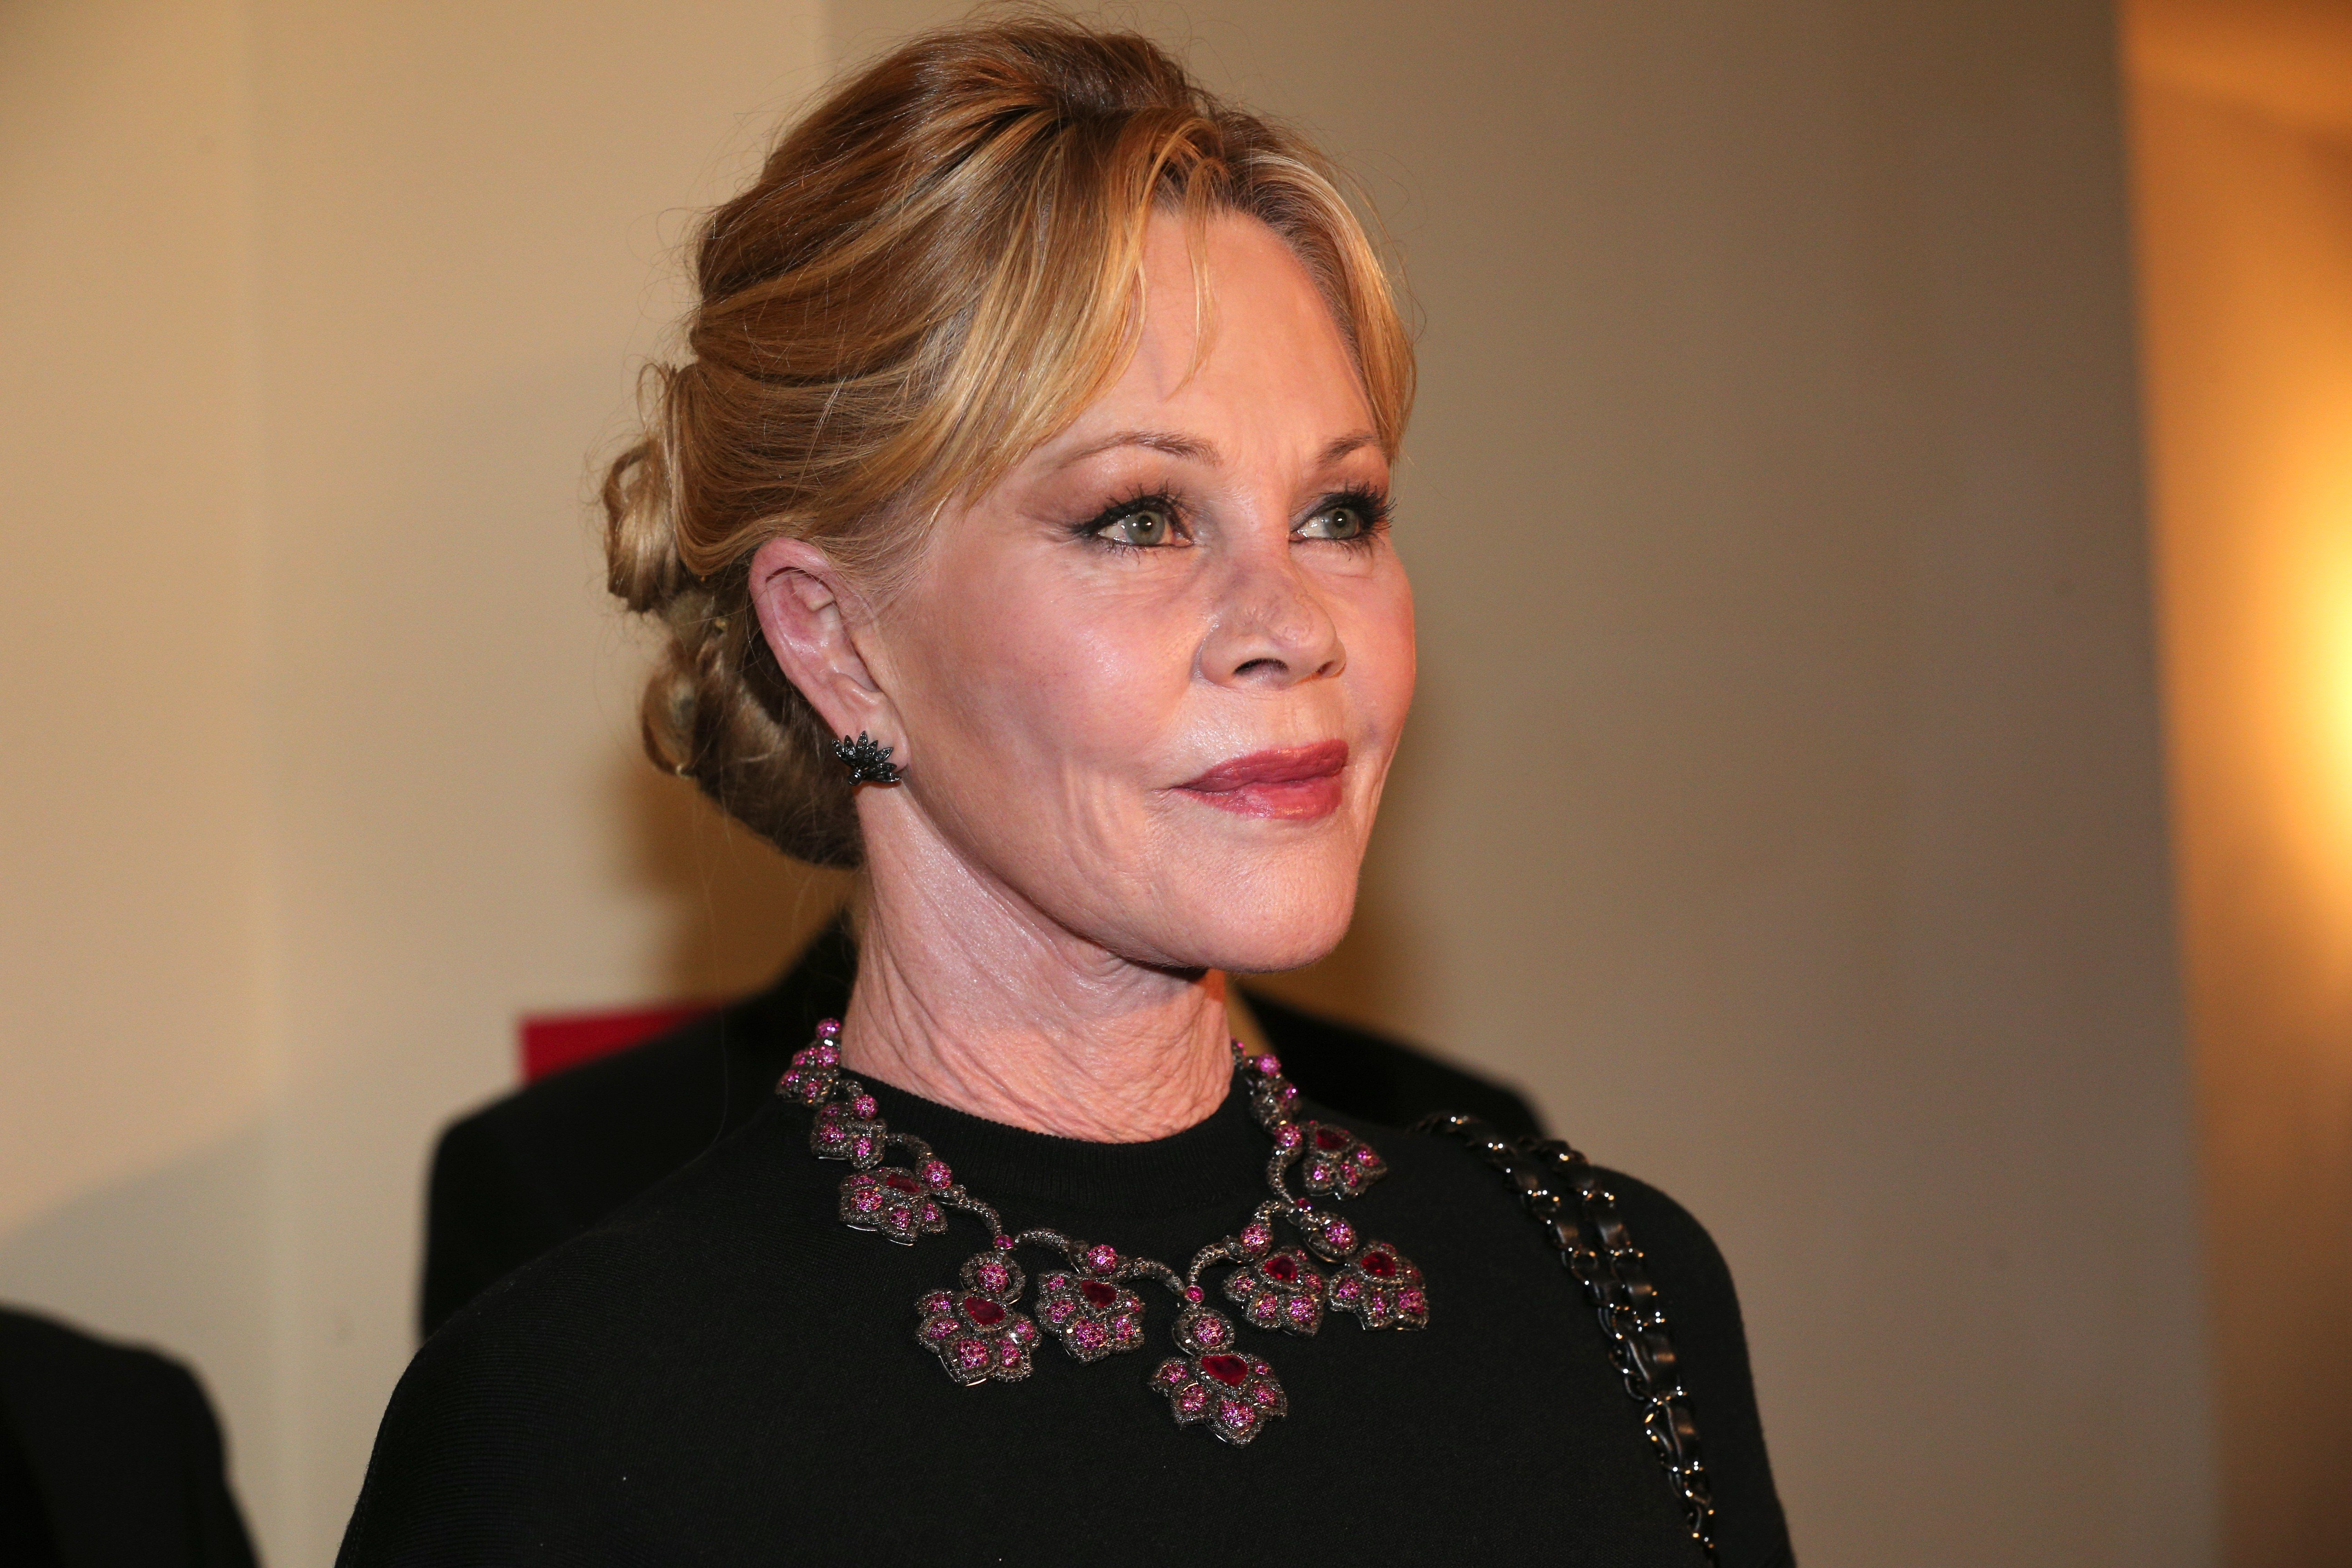 Melanie Griffith during the reception of Opera Ball Vienna ( Wiener Opernball ) at Grand Hotel on February 8, 2018 in Vienna, Austria. | Source: Getty Images